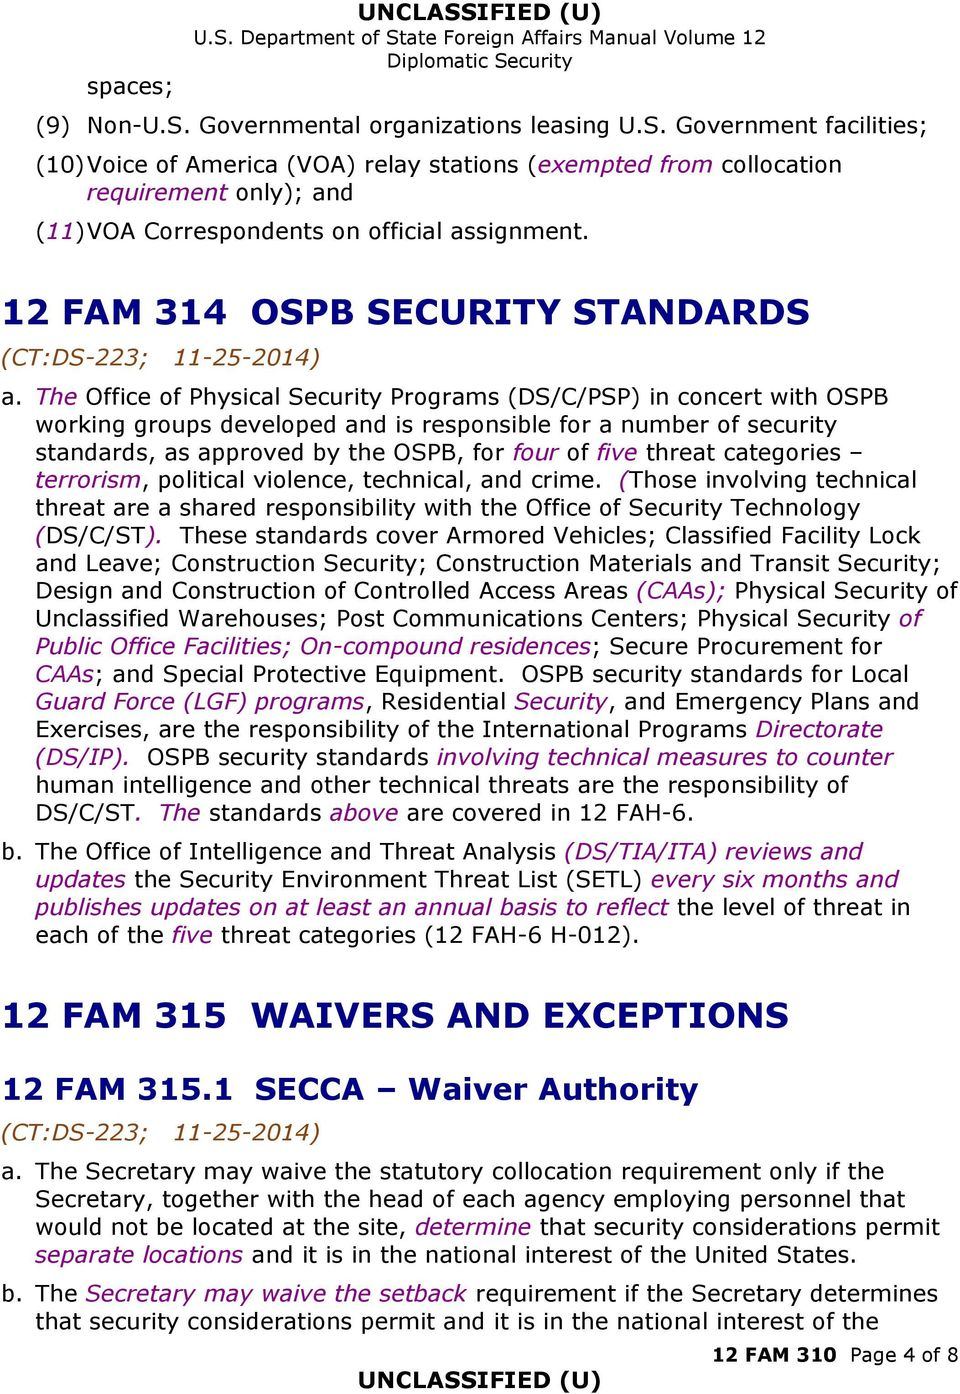 The Office of Physical Security Programs (DS/C/PSP) in concert with OSPB working groups developed and is responsible for a number of security standards, as approved by the OSPB, for four of five